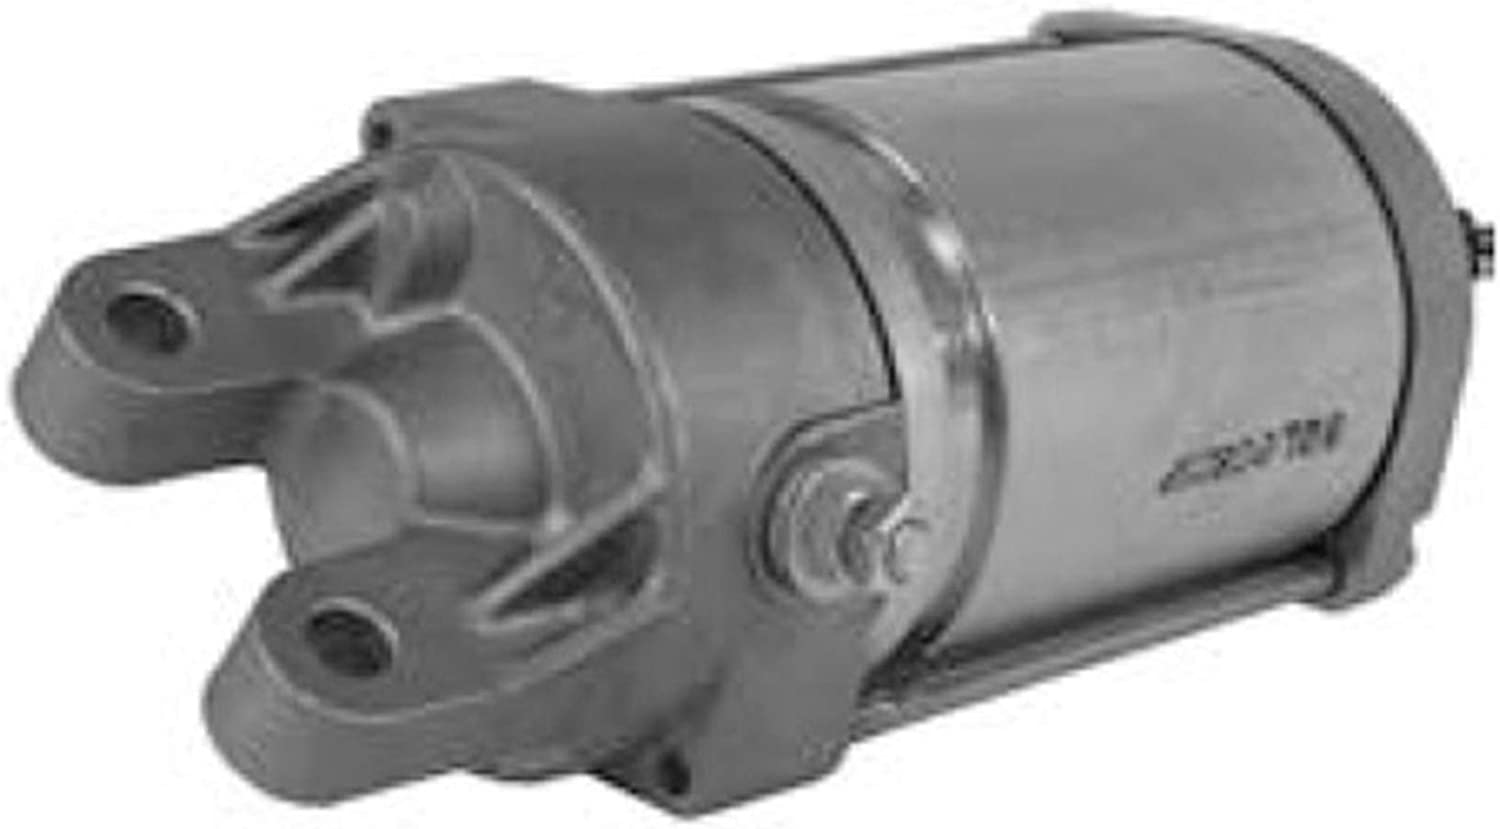 Challenge the lowest price of Japan Starter Motor Fits 2011 RST90 Venture Max 58% OFF RS Yamaha